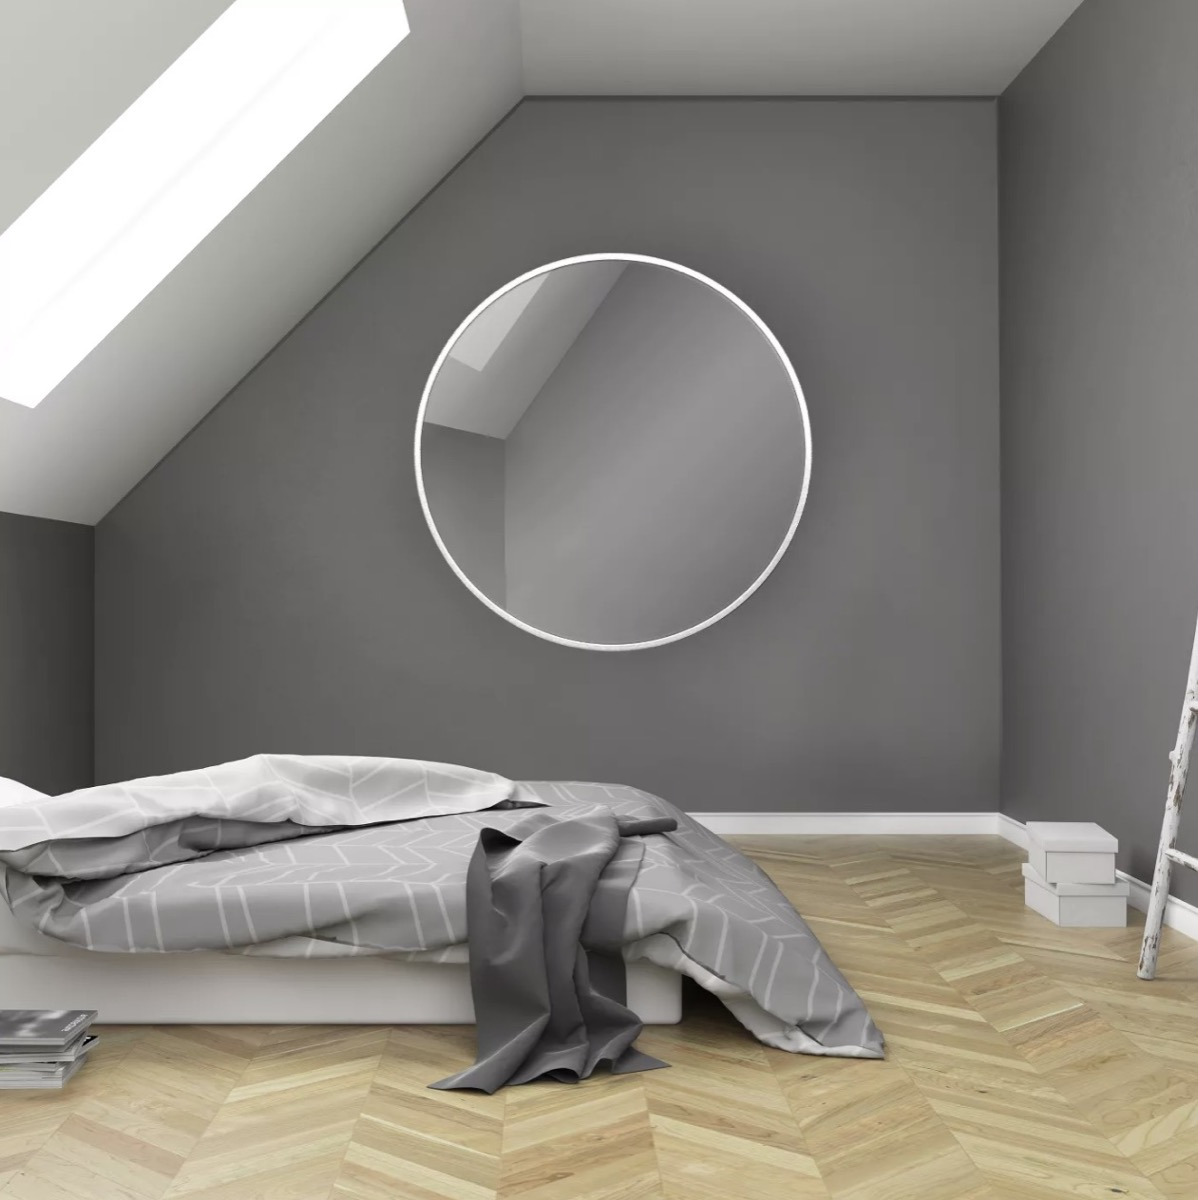 gray room with bed on the floor and round mirror, target home decor items